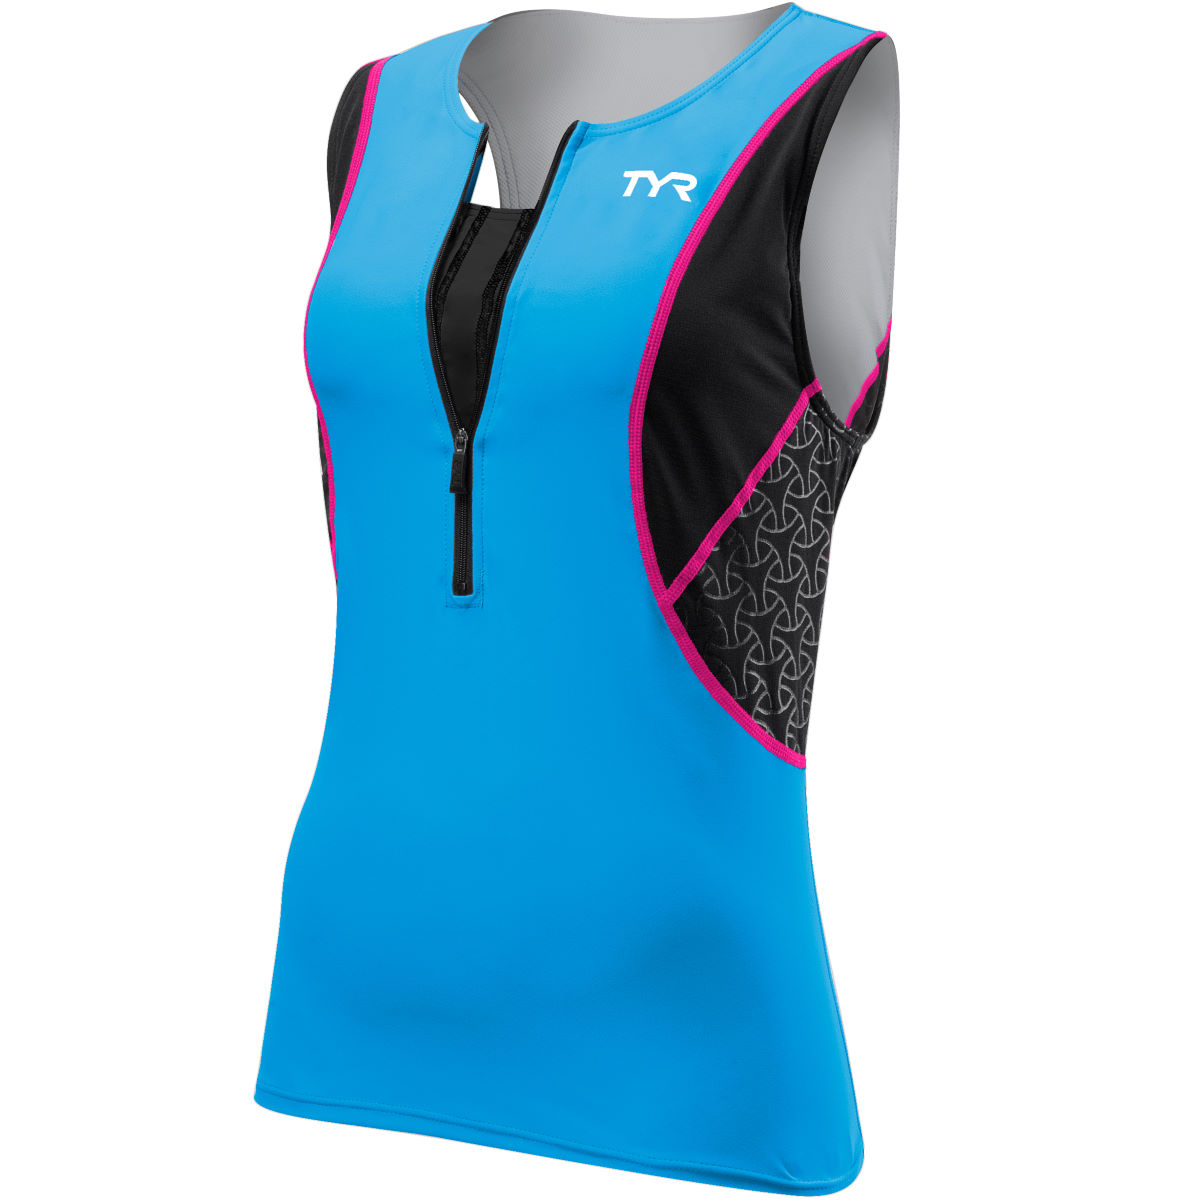 TYR Loose Singlet with Bra - Small Black/Blue/Pink | Tri Tops